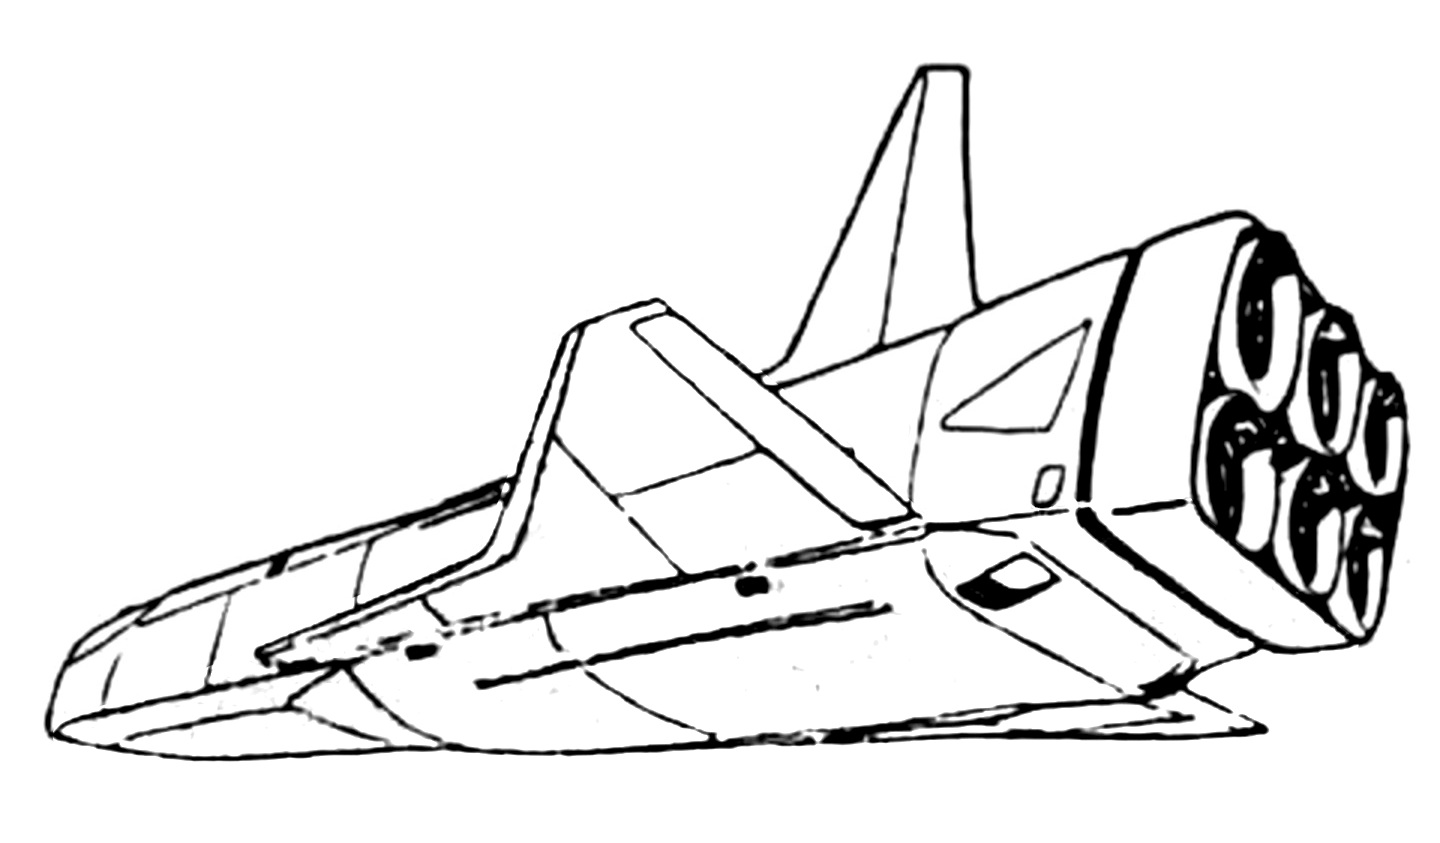 SC-32 Roc Cargo Aerospacecraft 14